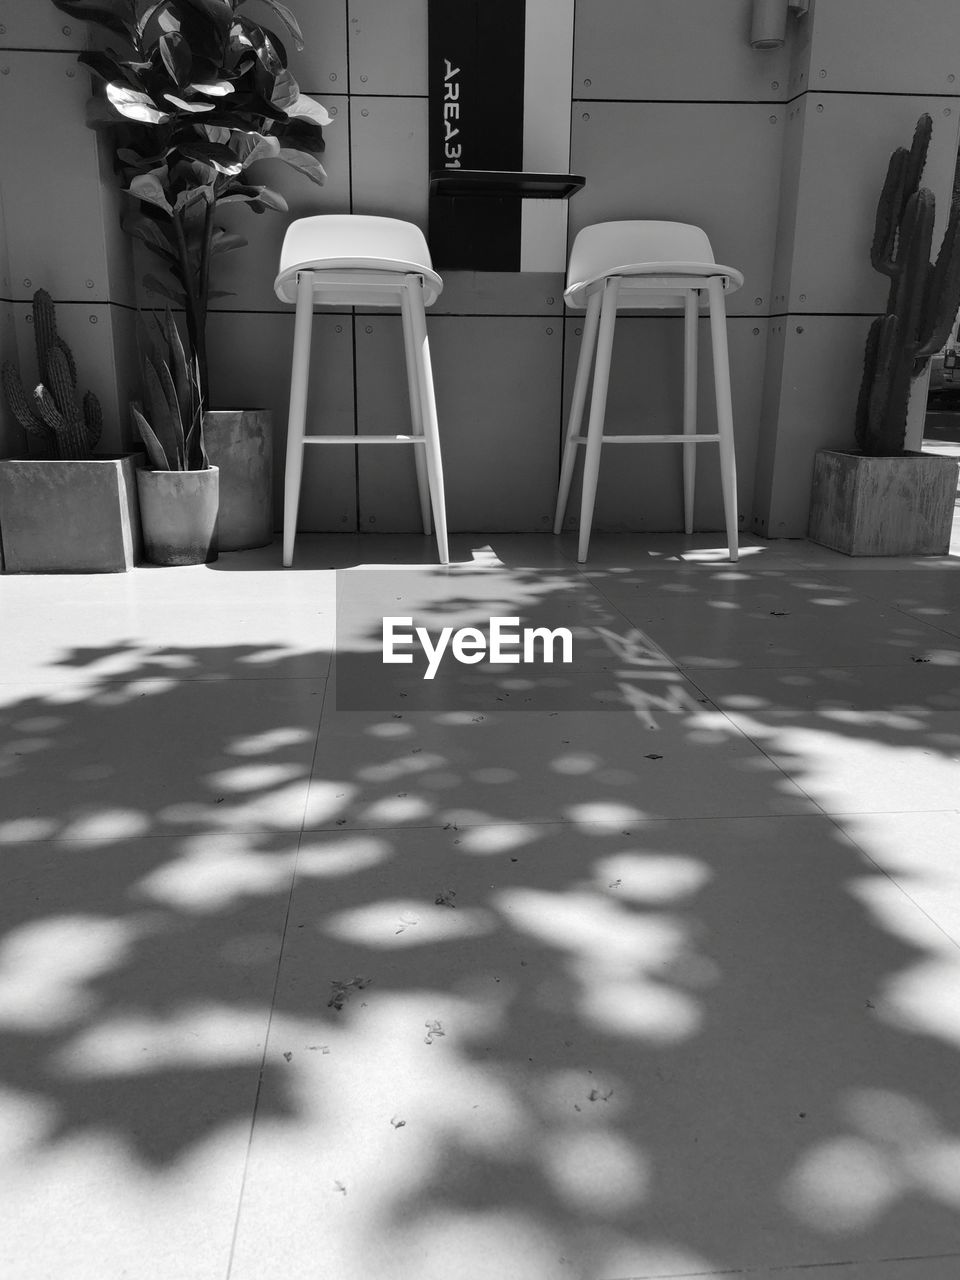 seat, chair, shadow, flooring, sunlight, table, indoors, no people, nature, day, absence, home interior, furniture, empty, tile, tiled floor, relaxation, domestic room, business, surface level